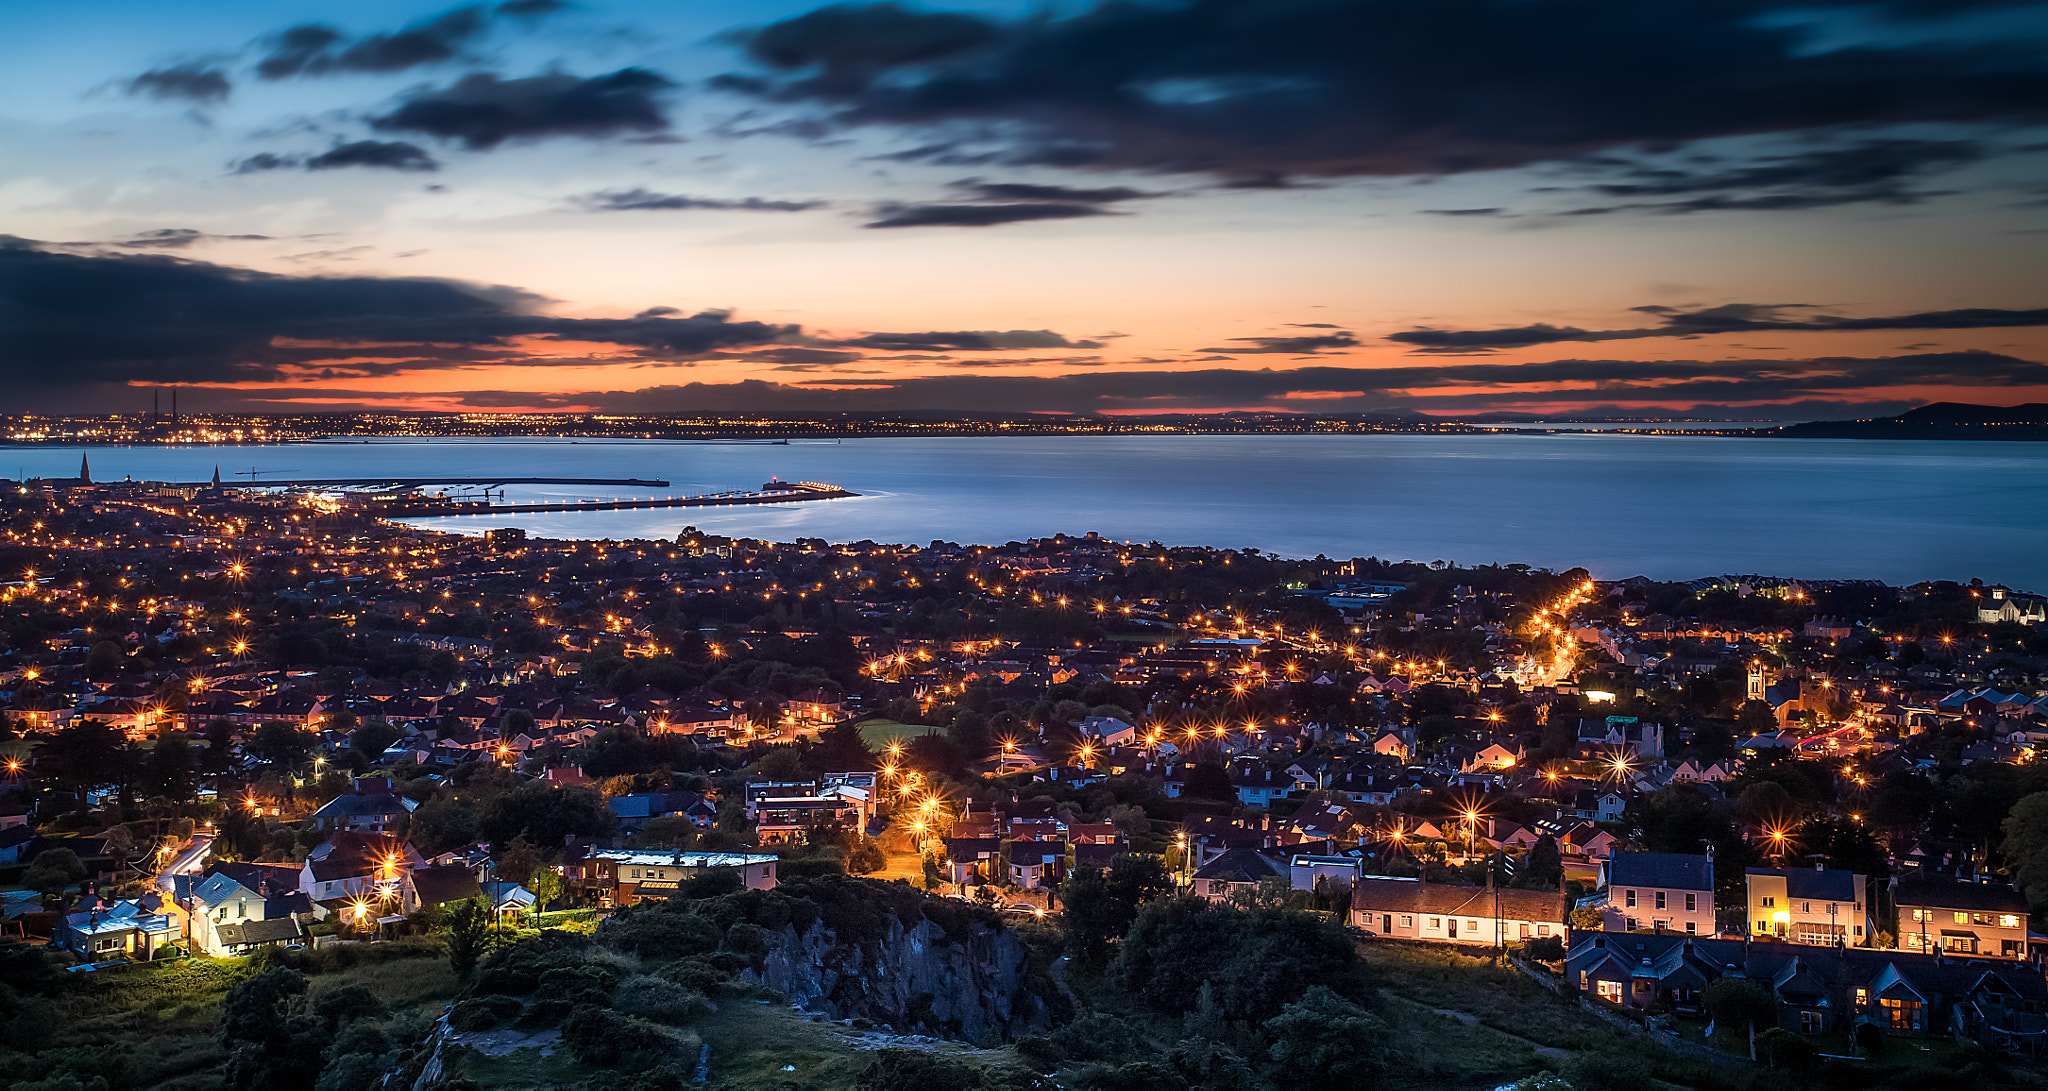 Photograph Dún Laoghaire Nightscape by Lukas Larsed on 500px